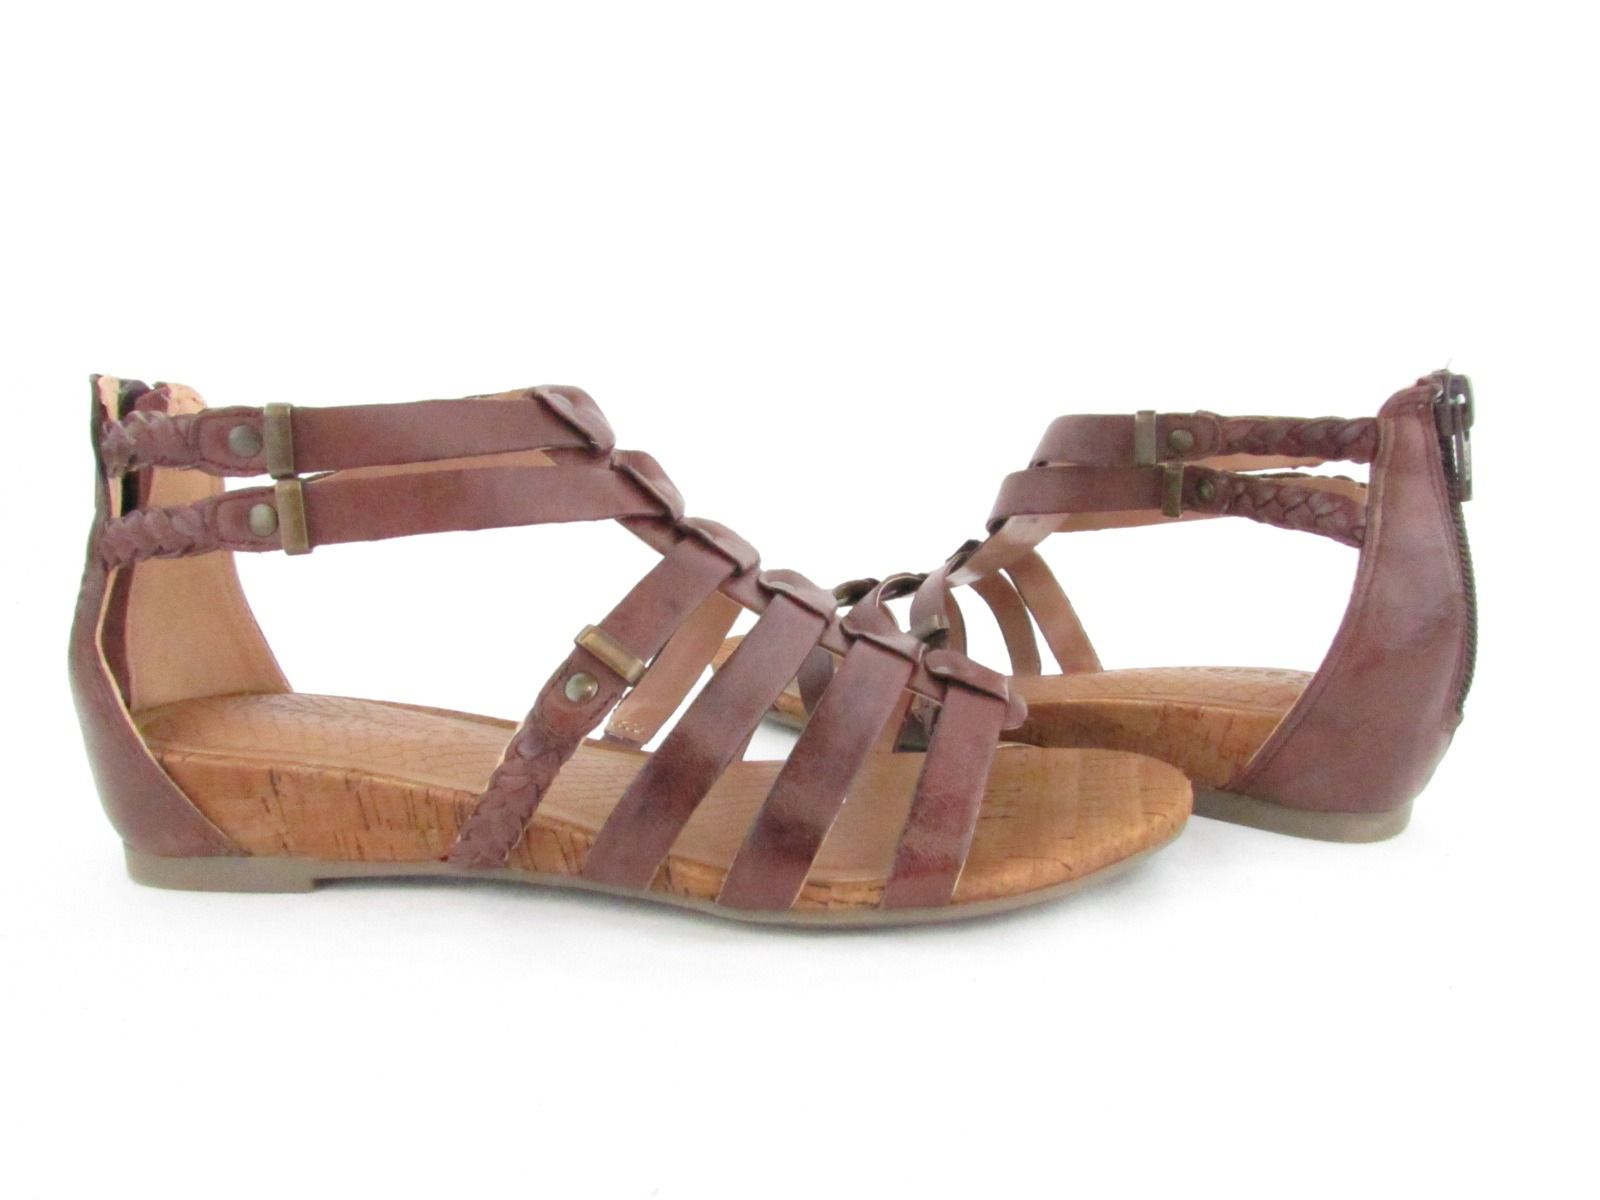 BareTraps Gweneth Womens Size 6 5M Brown Open Toe Leather Gladiator Sandals New | eBay